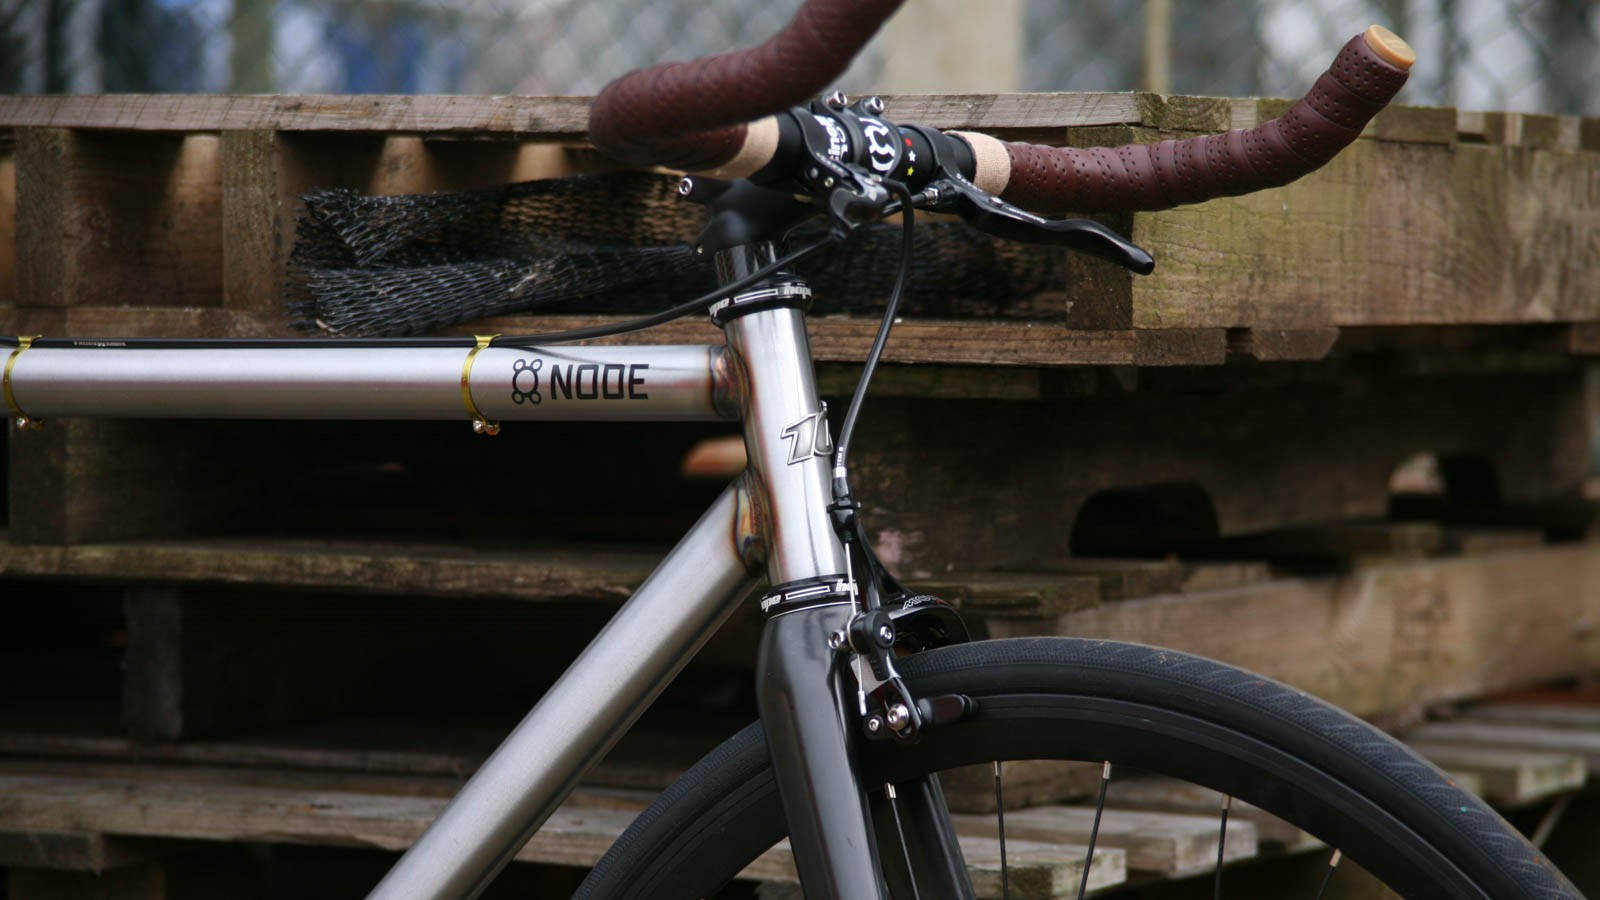 The Node is made from Reynolds 525 steel tubing and with durability, speed and simplicity in mind